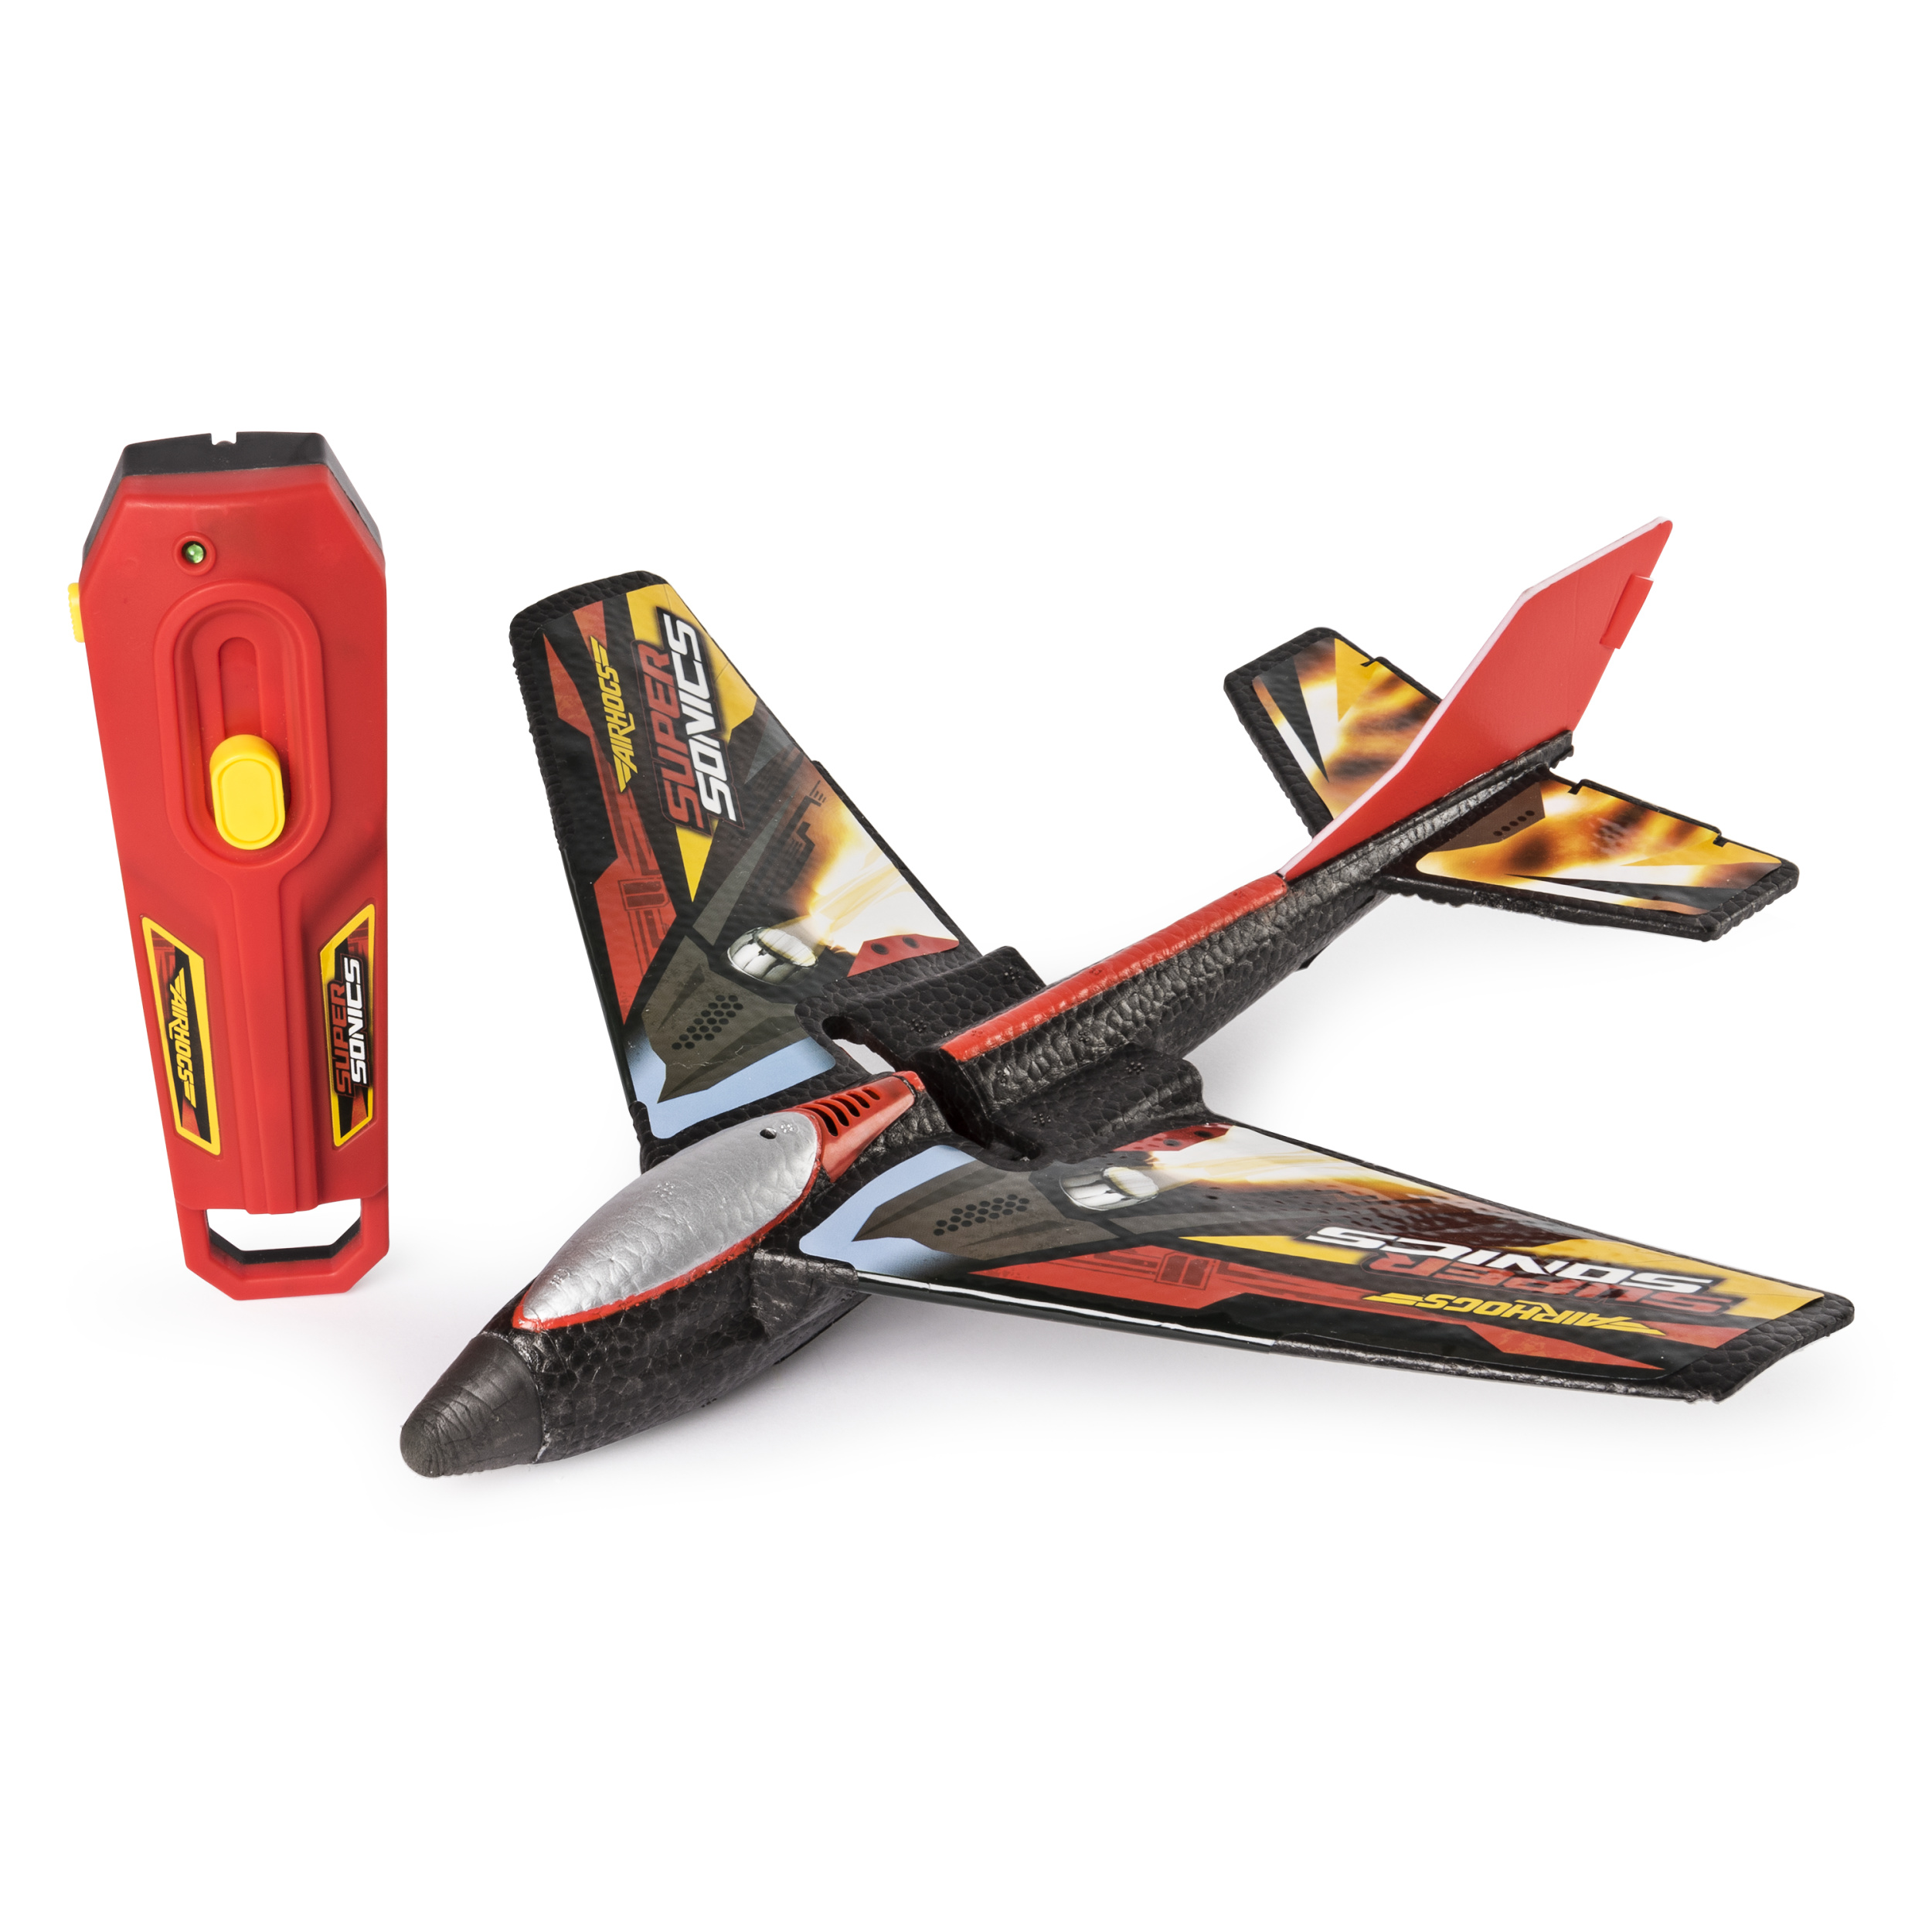 Air Hogs � Sonic Plane High-Speed Flyer with Real Motor Sounds by Spin Master Ltd